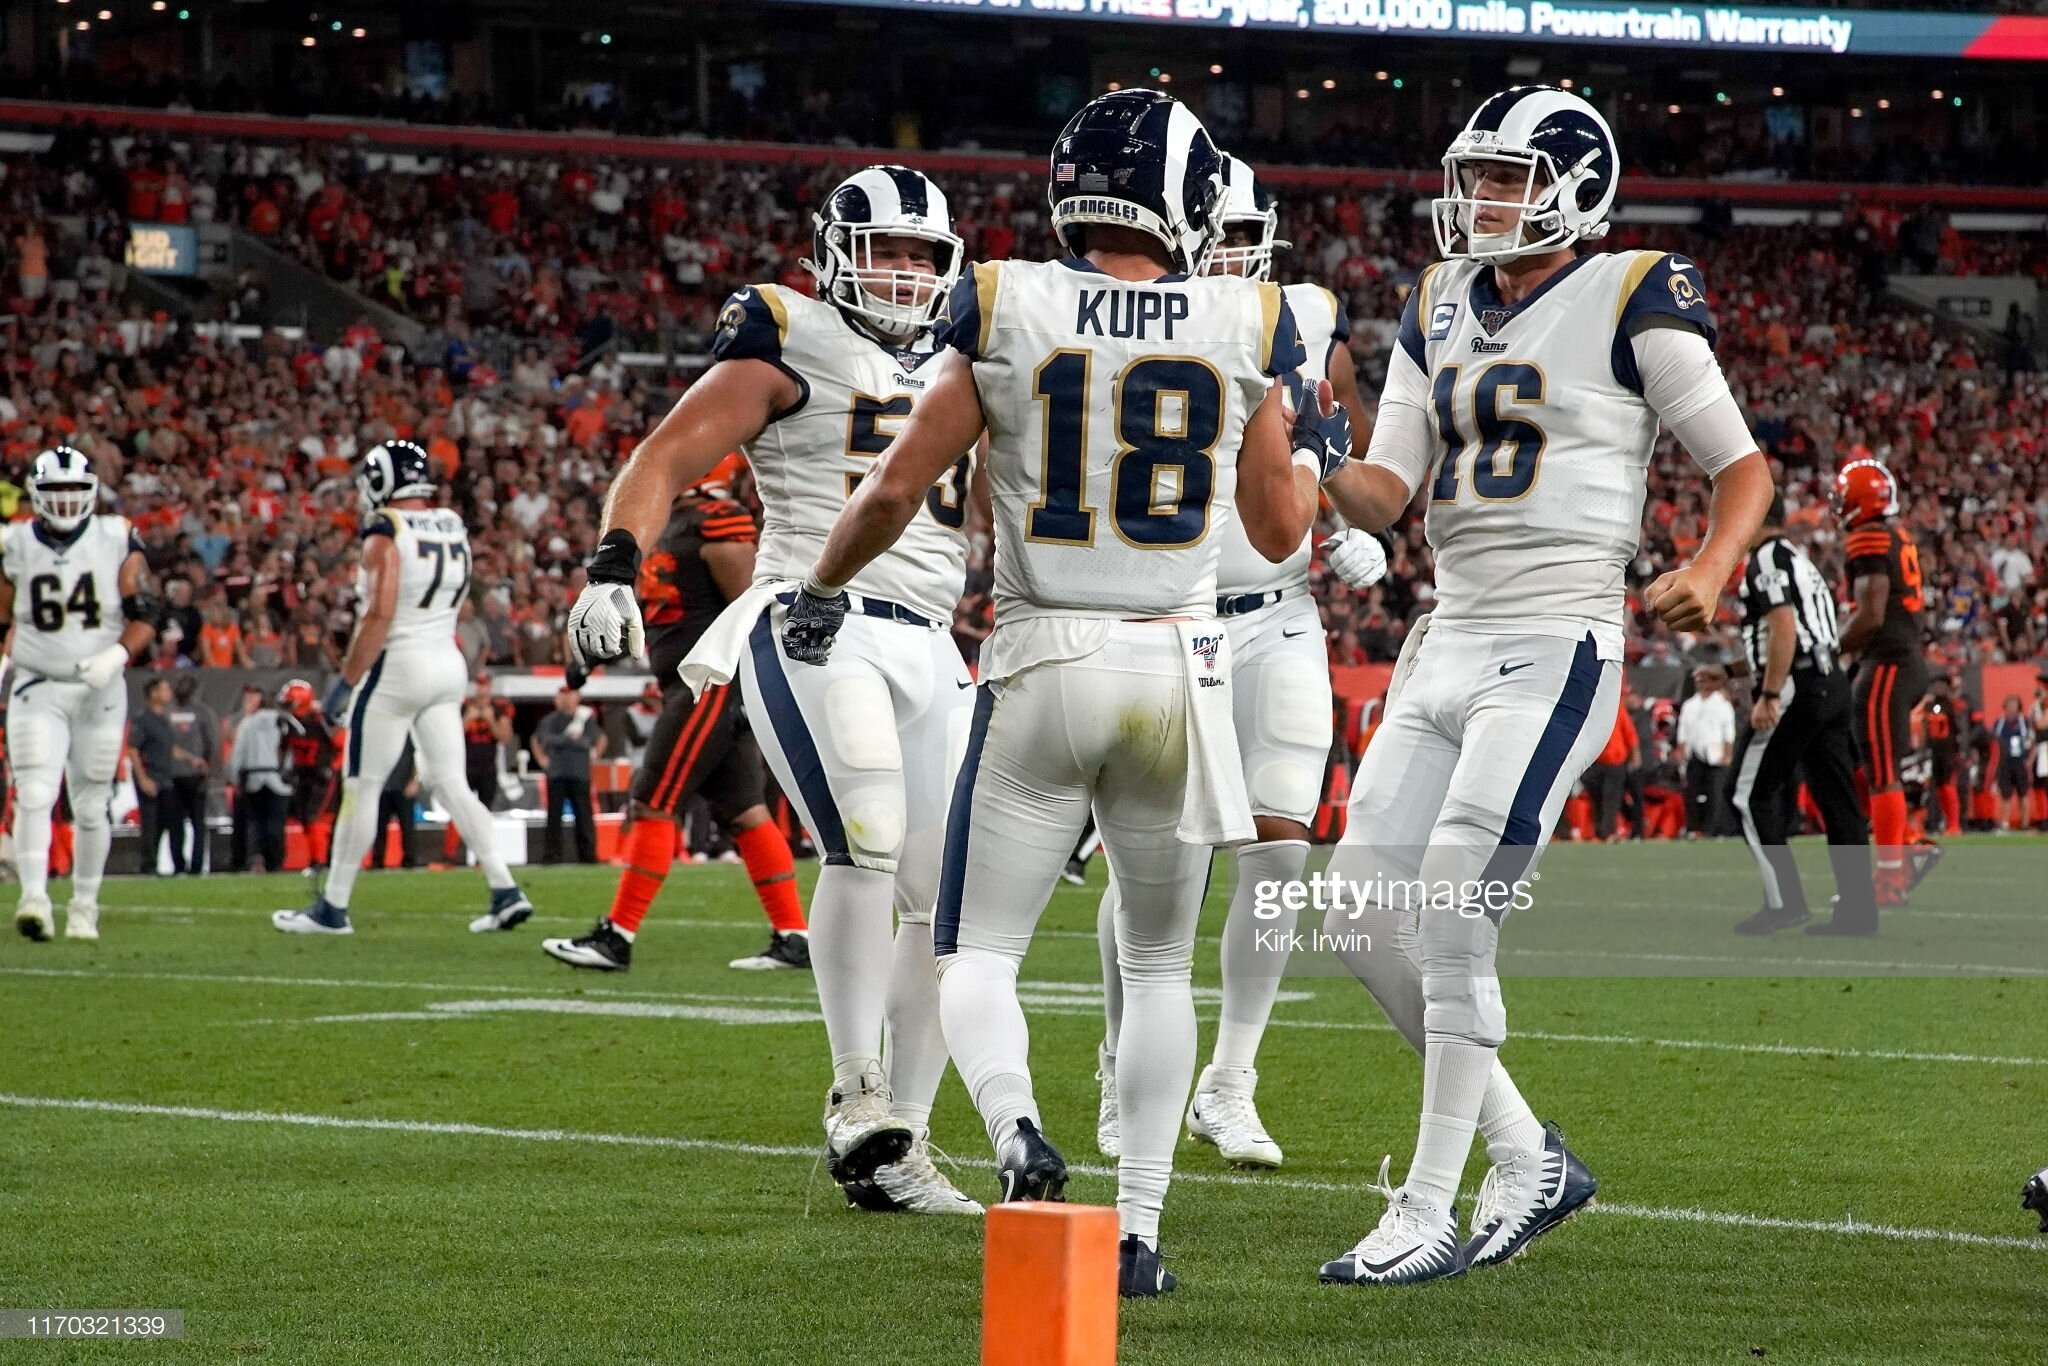 Cooper Kupp with his first touchdown since last season.